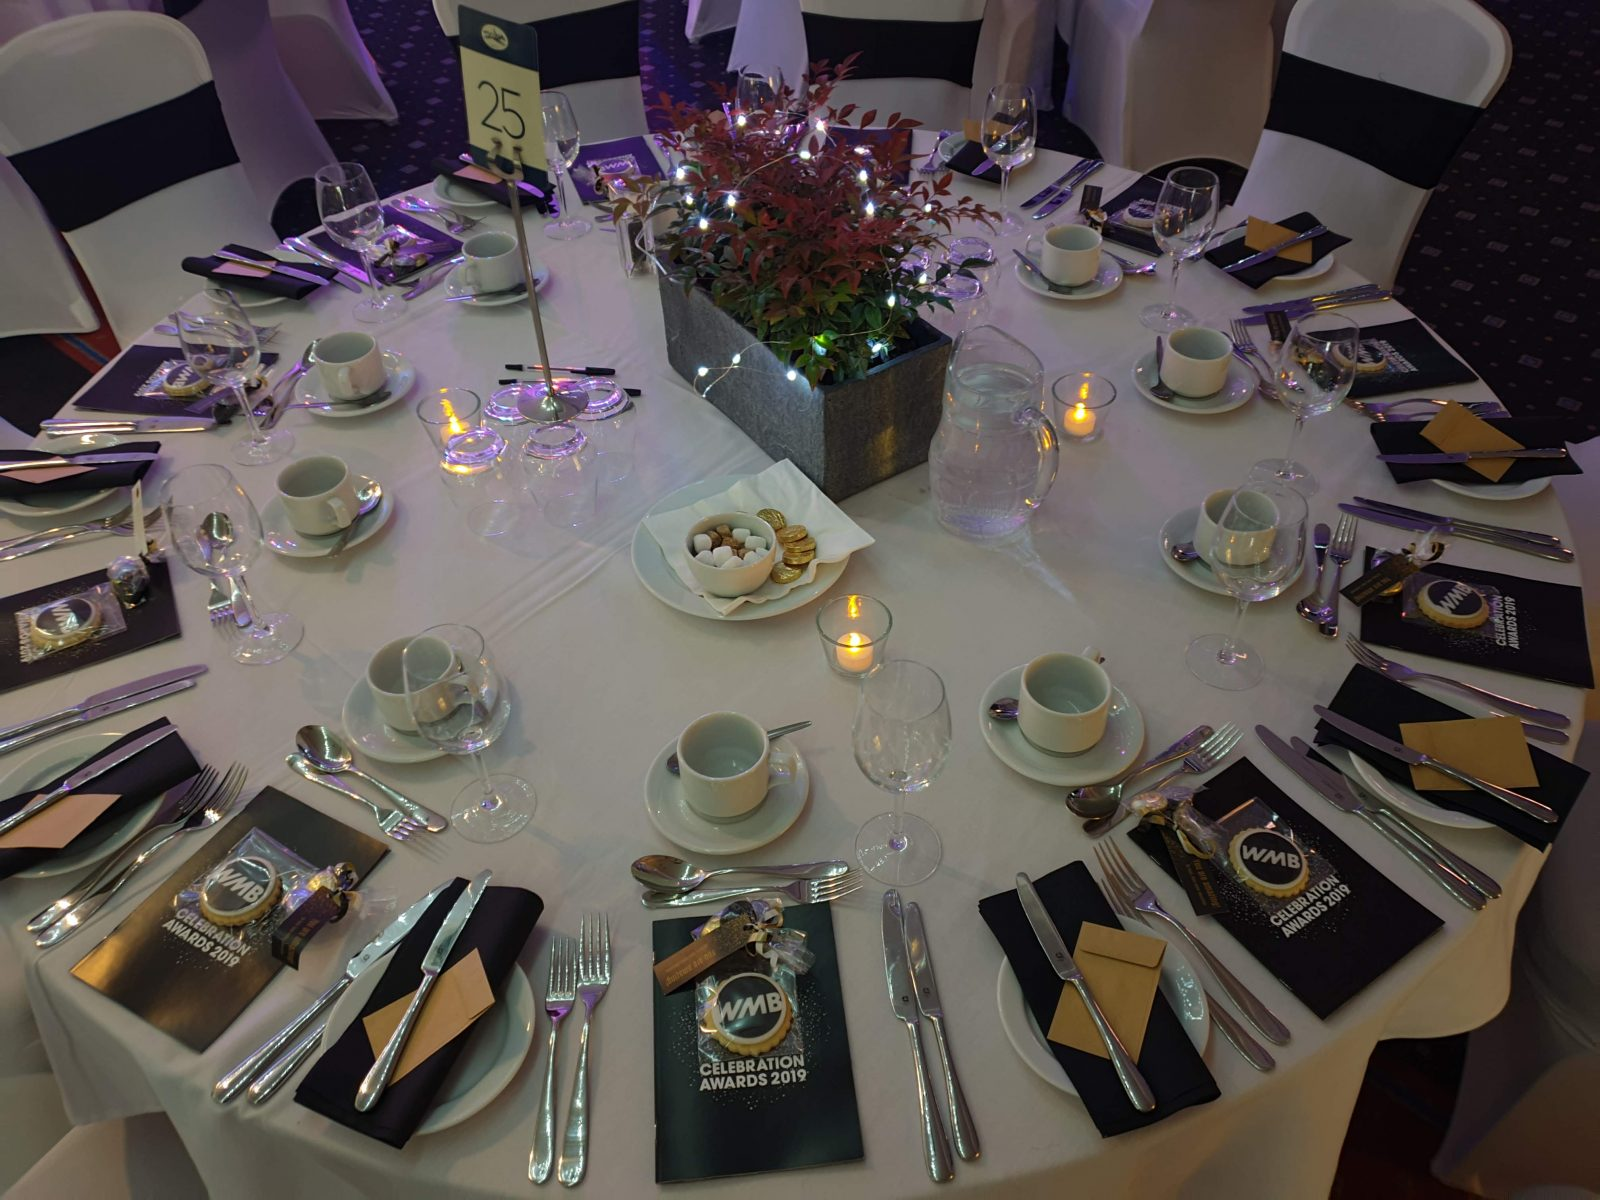 Women mean business award table setting with BLoom Bakers biscuits